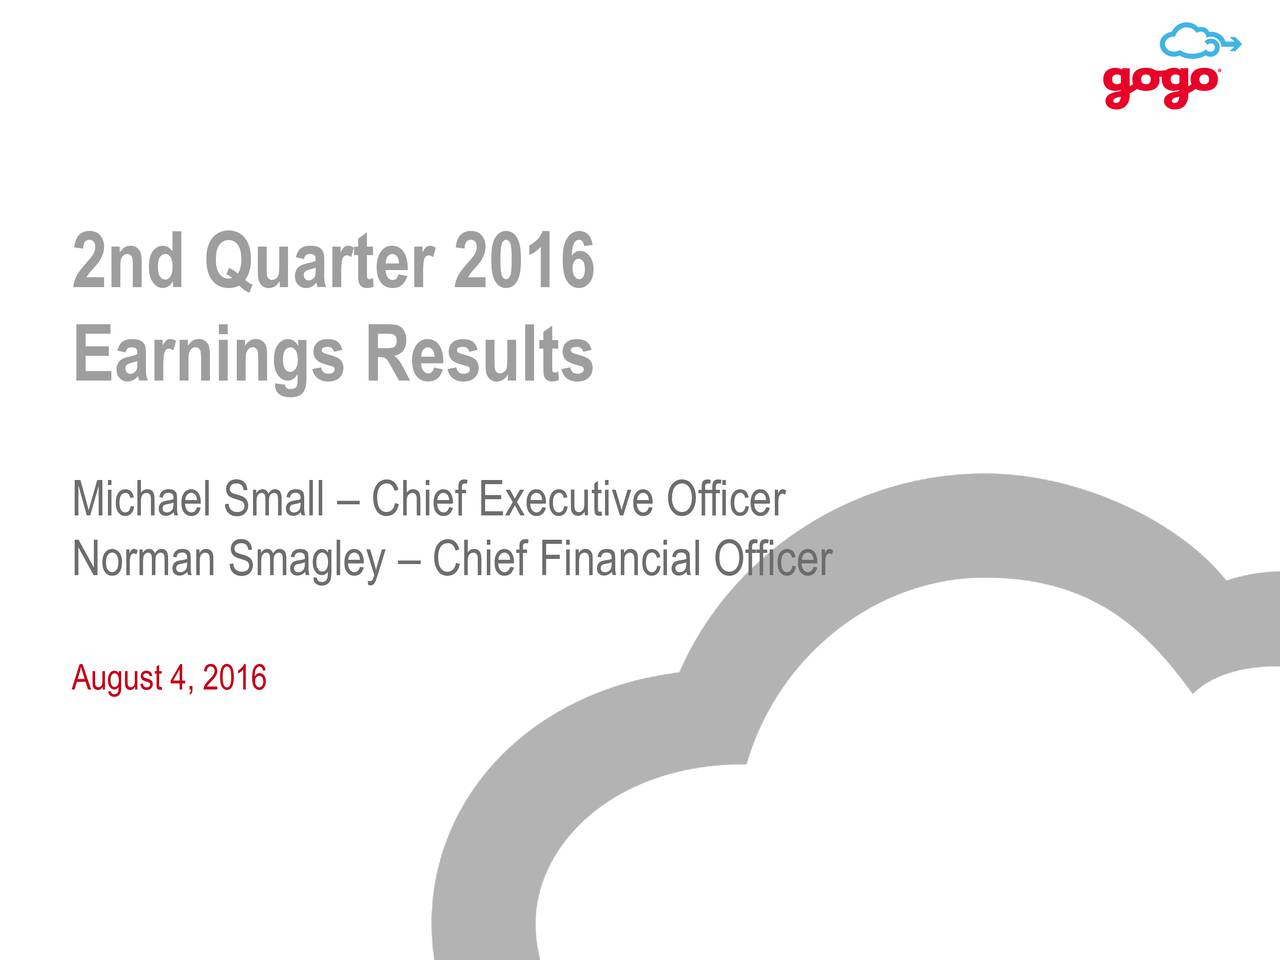 Earnings Results Michael Small  Chief Executive Officer Norman Smagley  Chief Financial Officer August 4, 2016